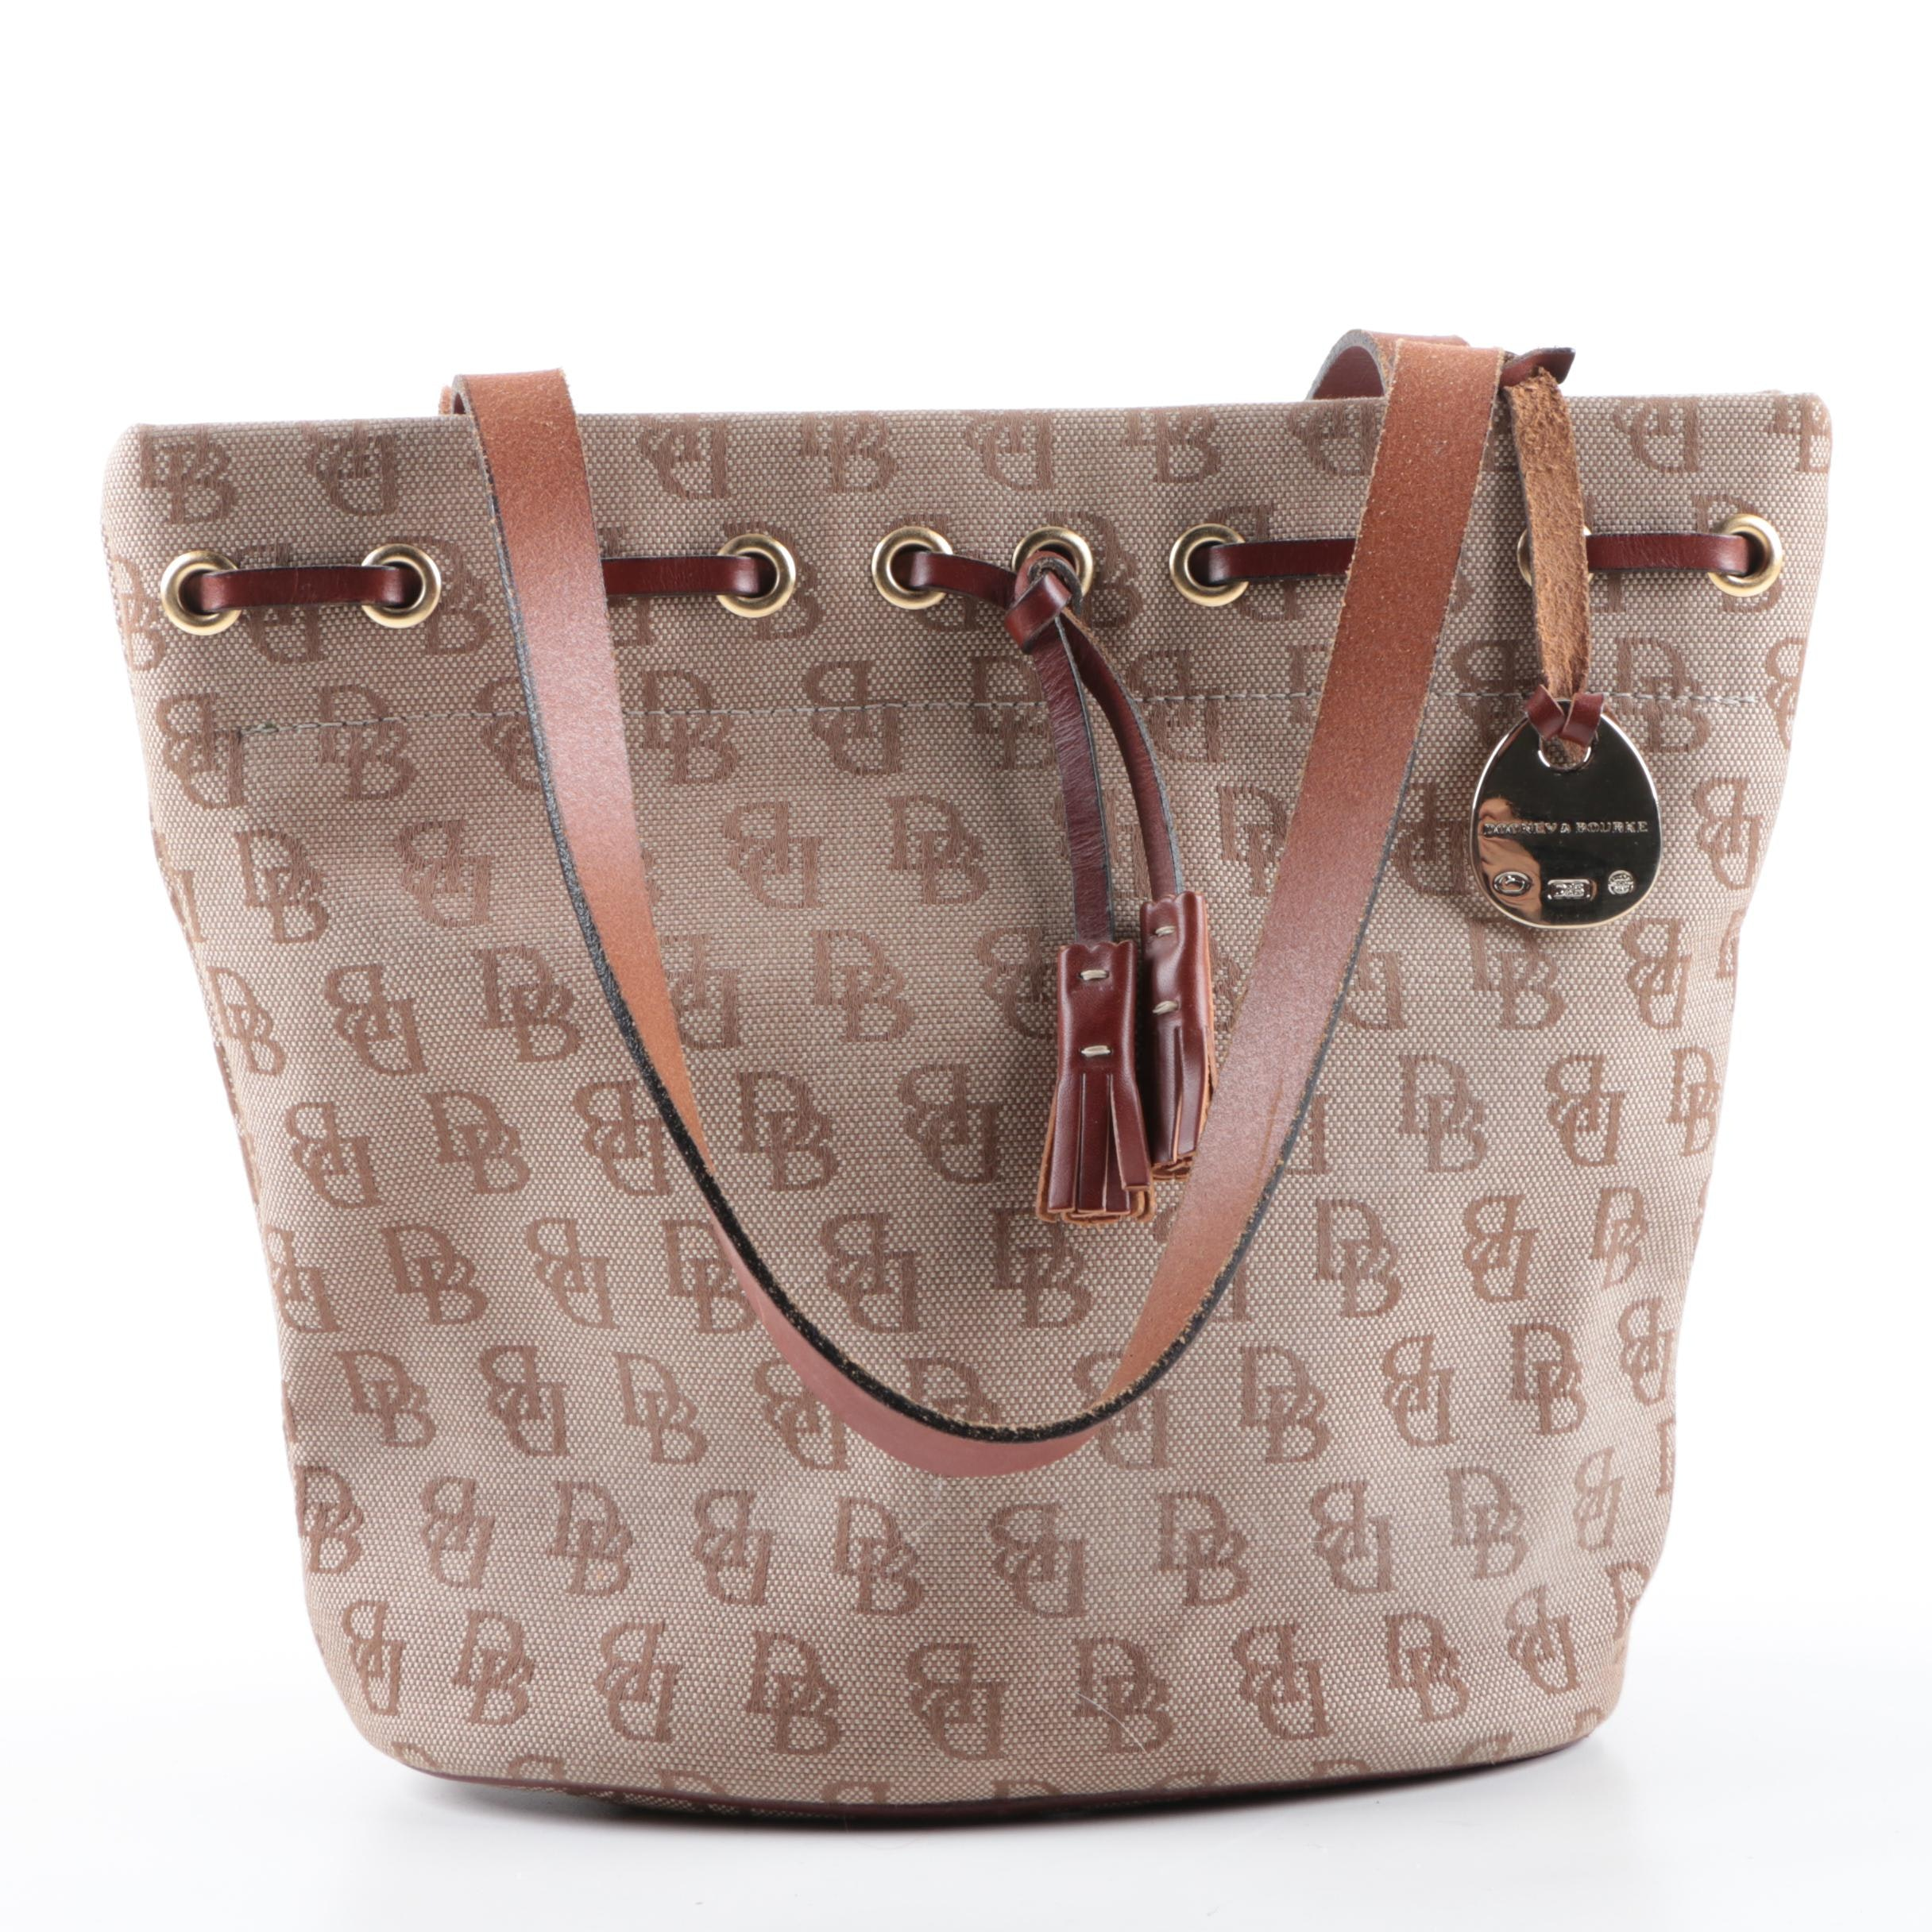 Dooney & Bourke Monogram Canvas Satchel